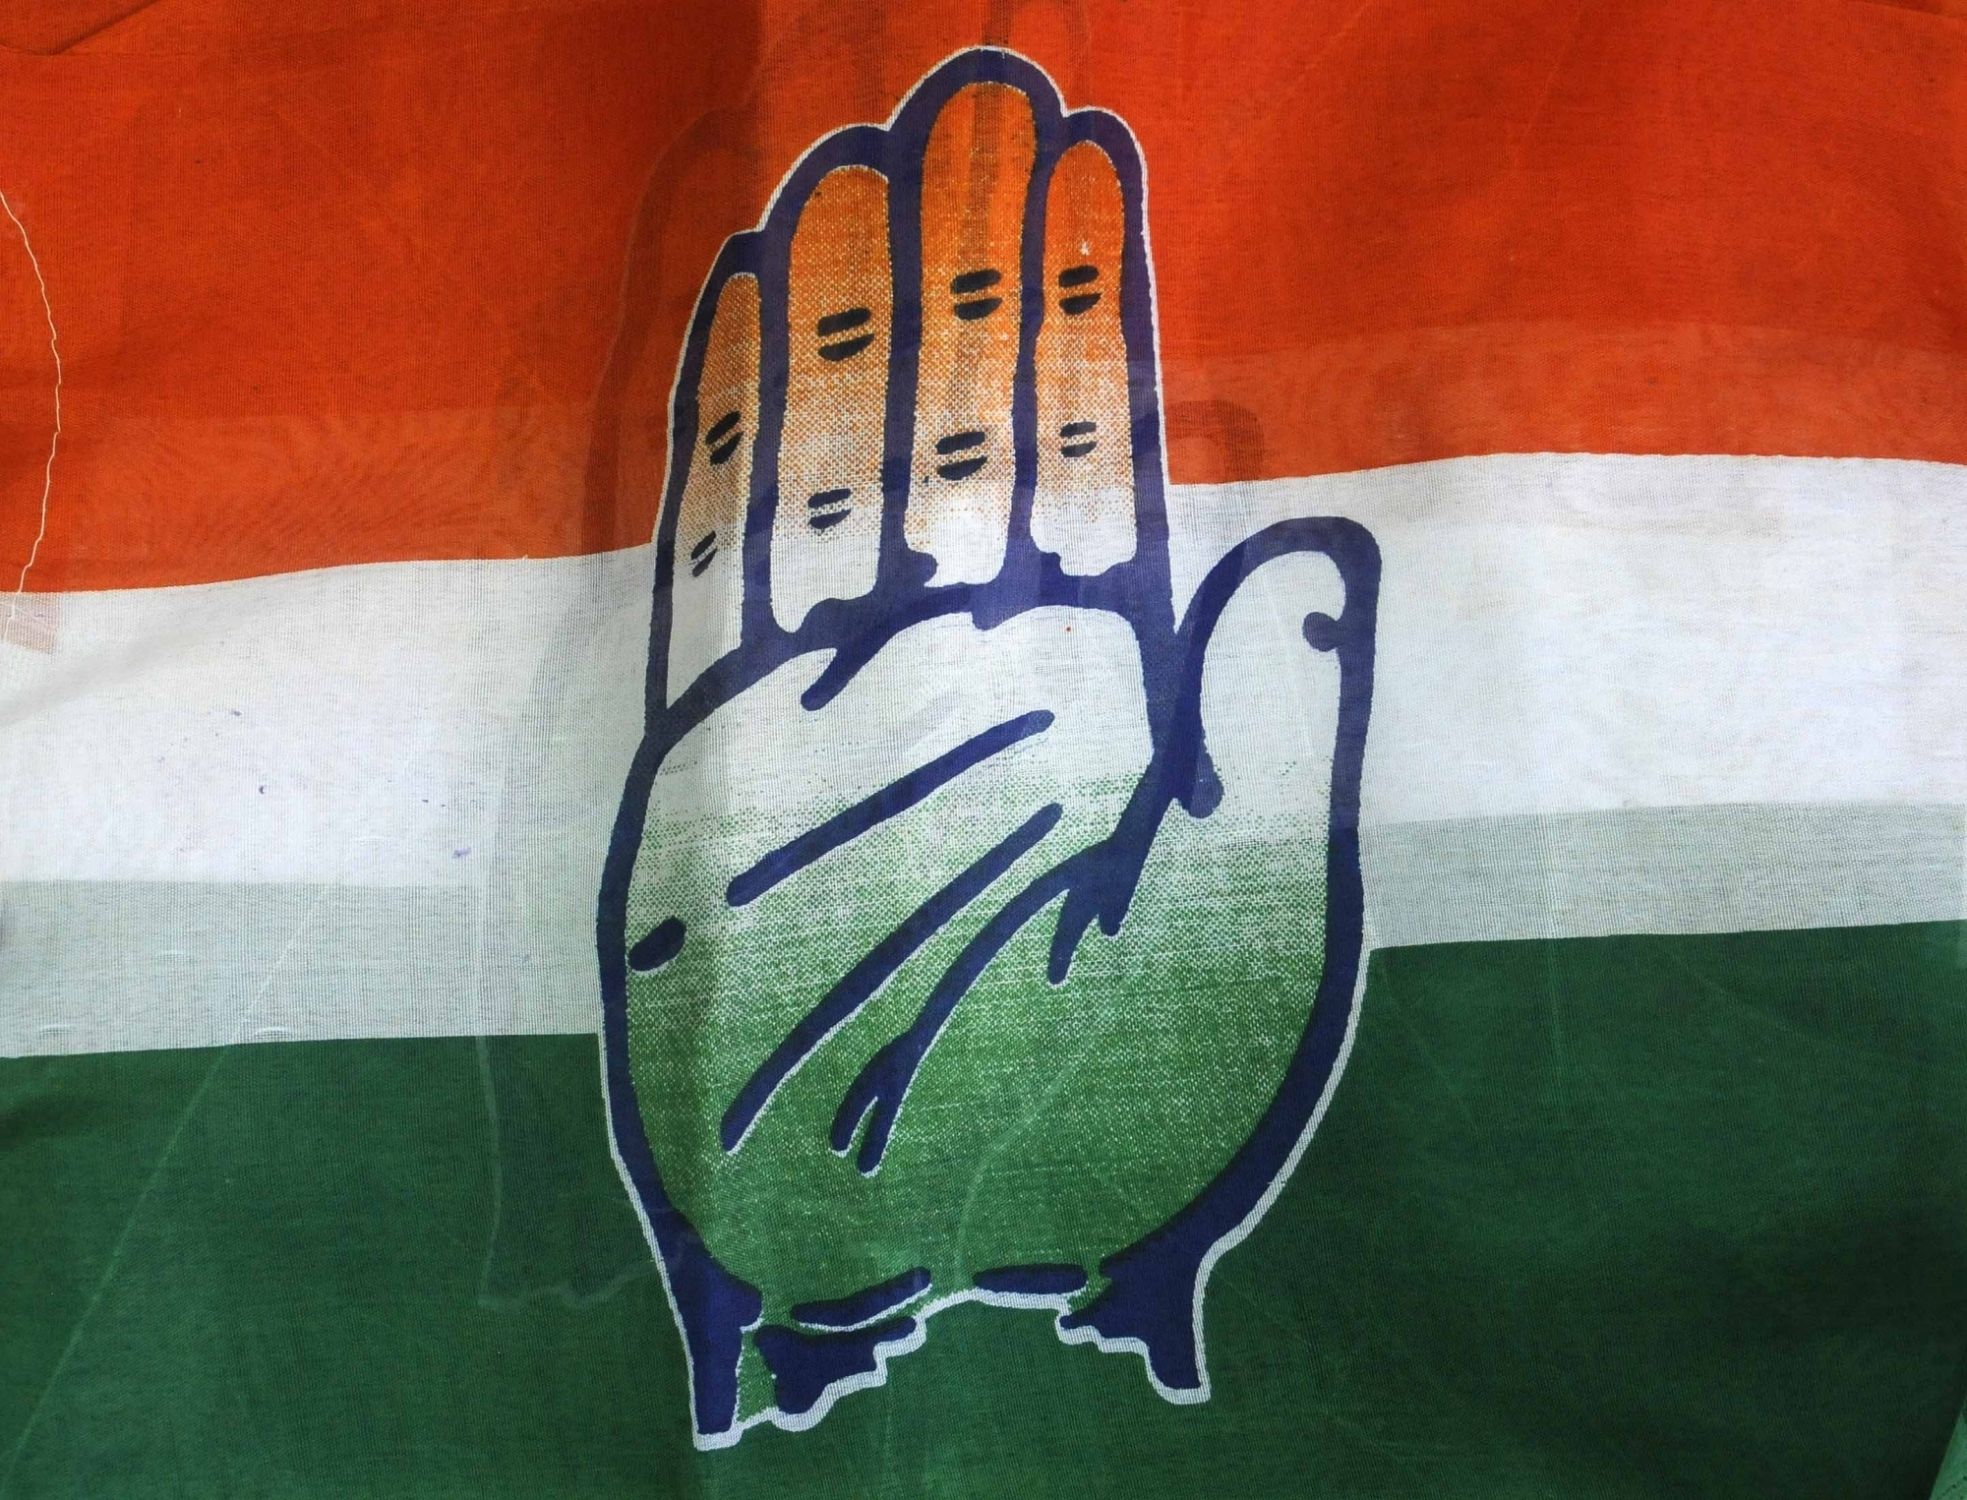 Congress declared two candidates for UP assembly by-election